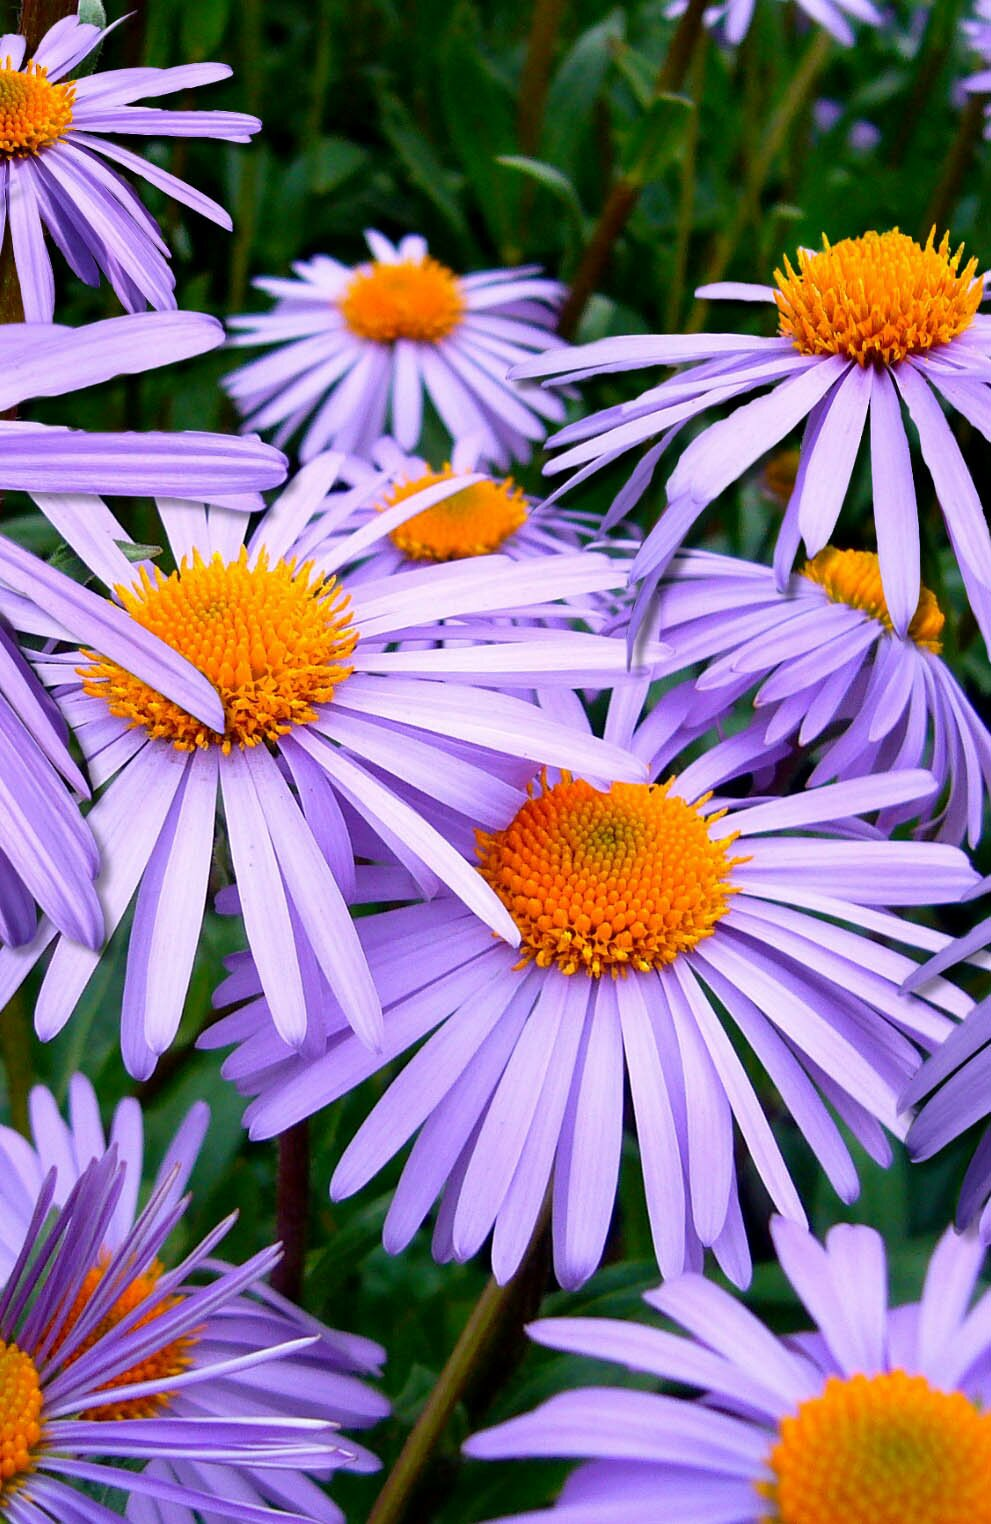 Aster tongolensis flower photo, 35 best flower photos